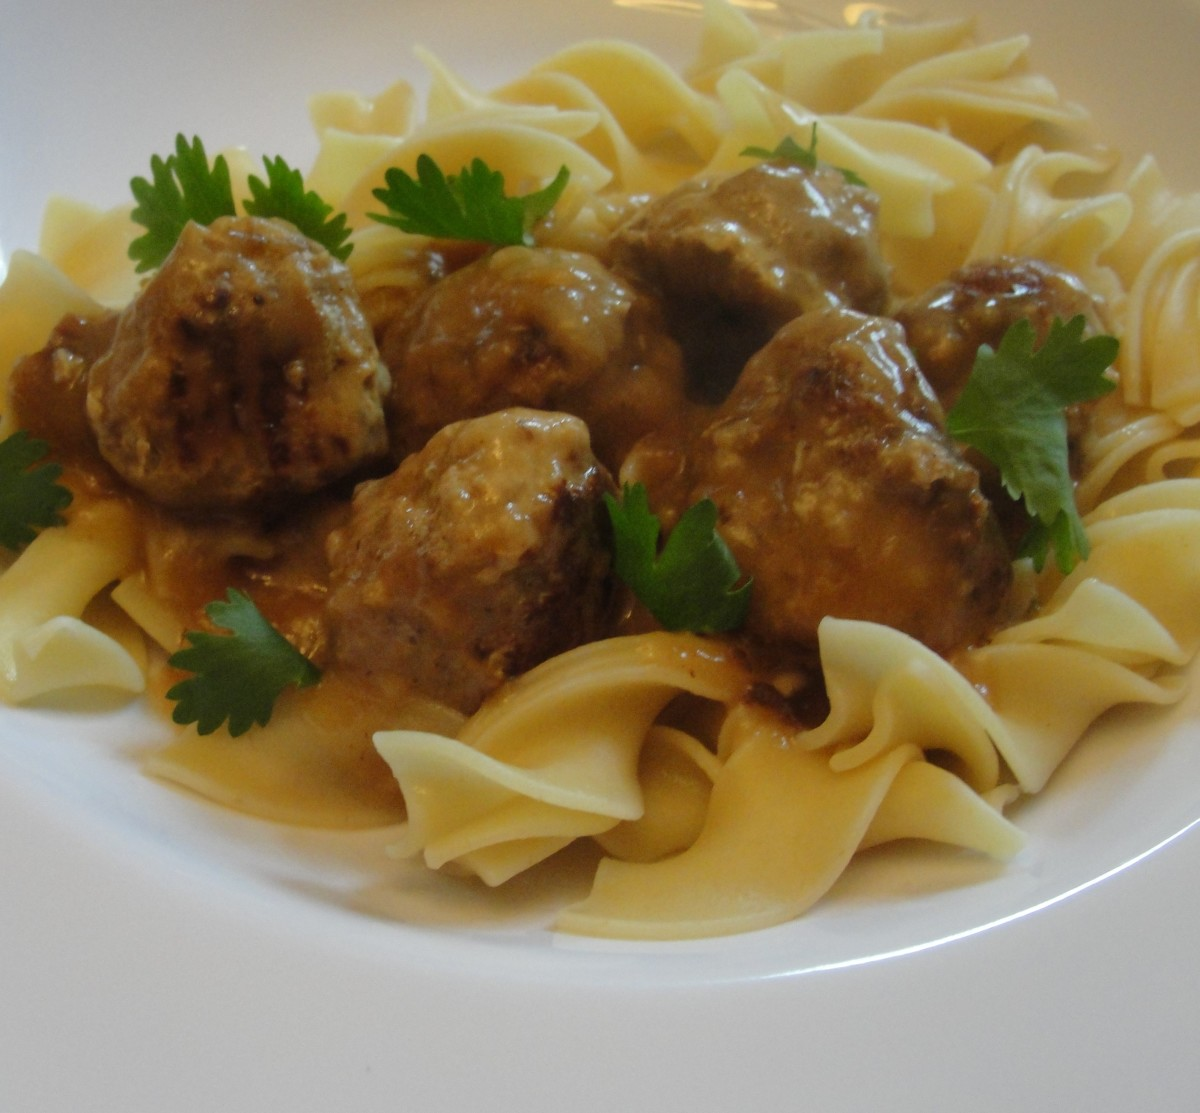 Perfect Swedish meatballs that don't require a trip to IKEA!